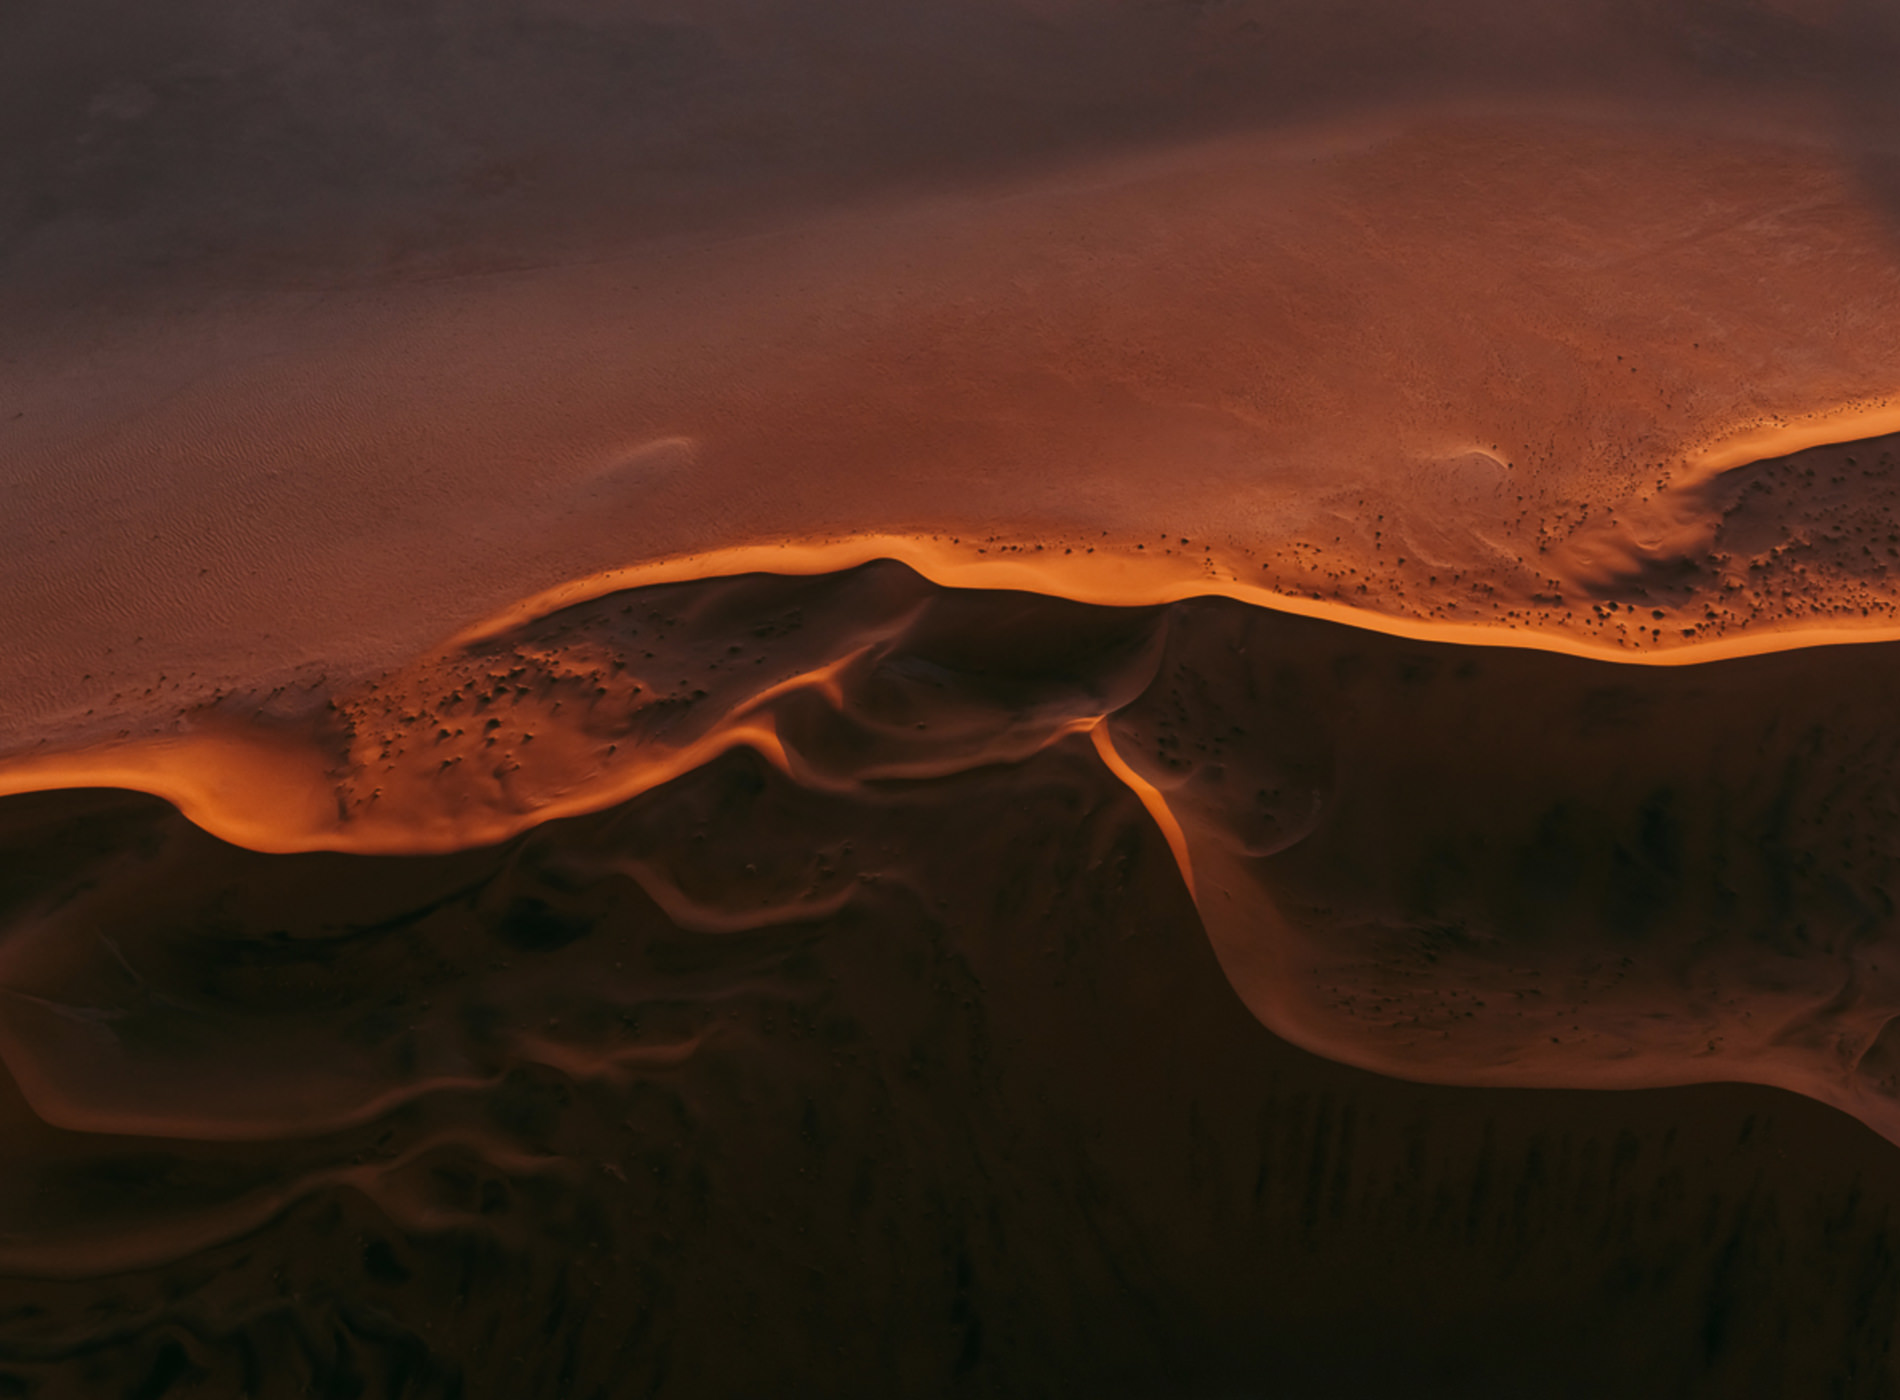 Series Tom Hegen Photographie Aérienne The Dunes Series